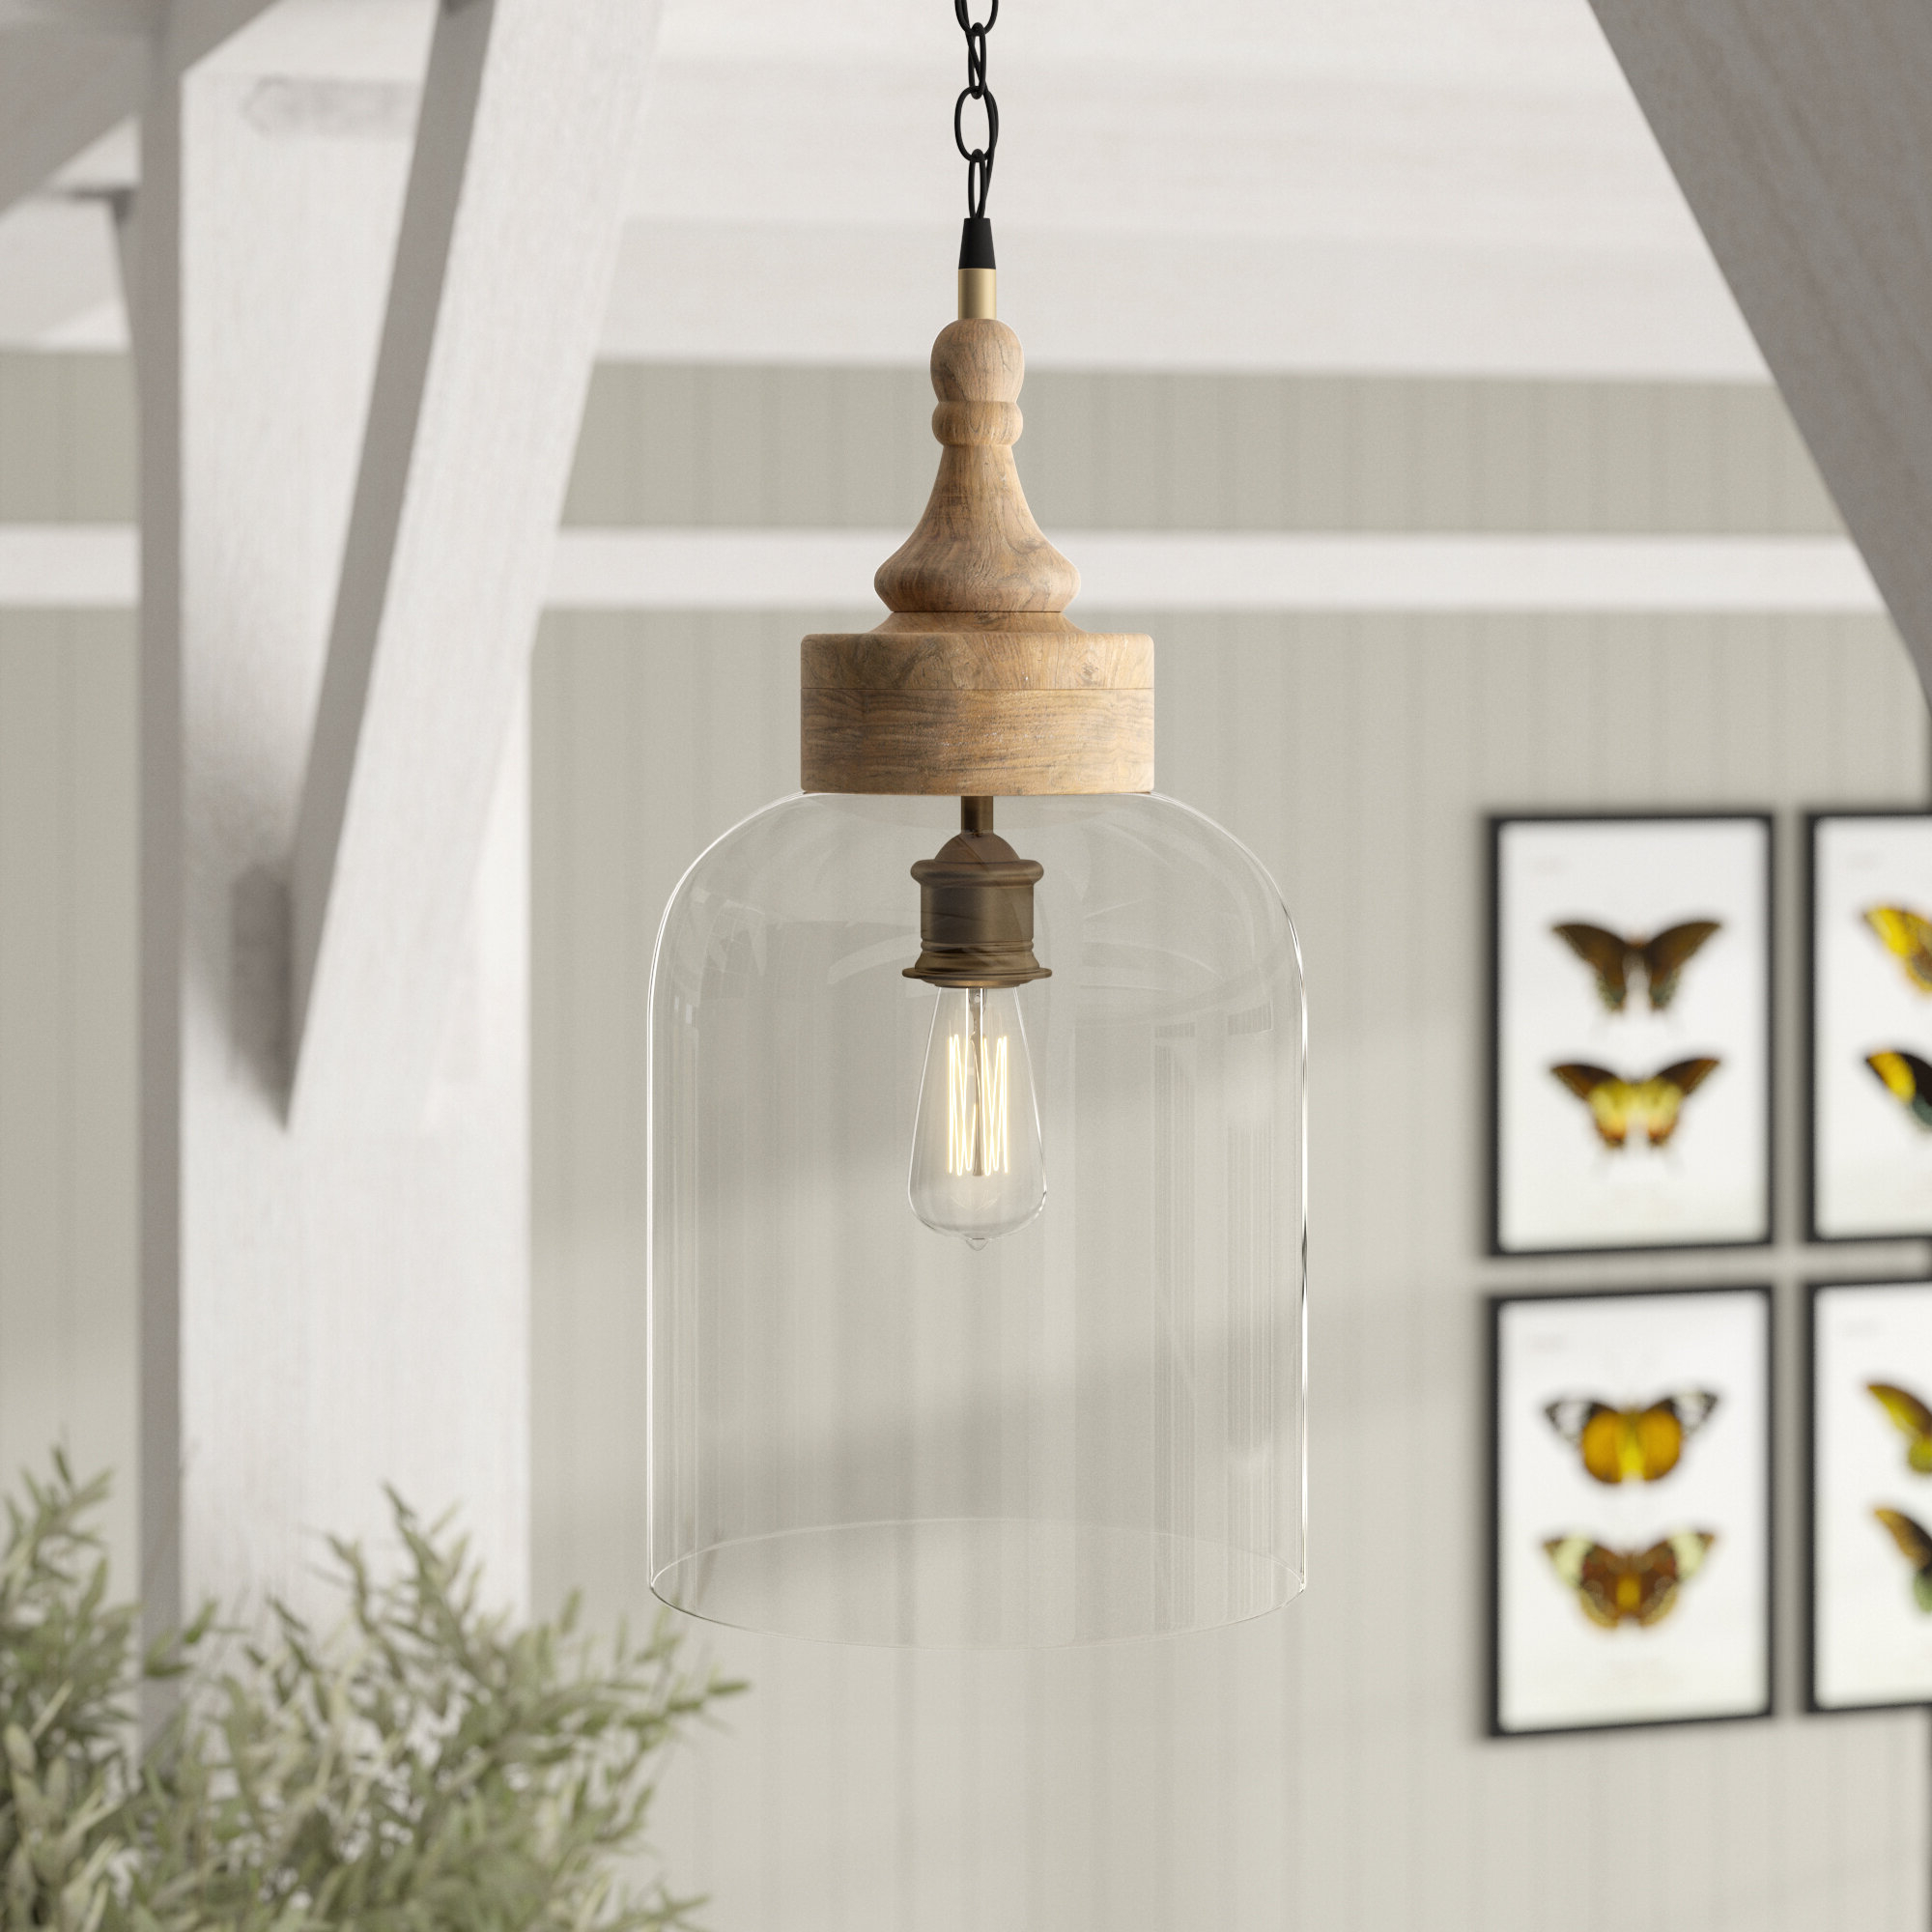 Preferred August Grove Olivo 1 Light Bell Pendant With Houon 1 Light Cone Bell Pendants (Gallery 12 of 20)